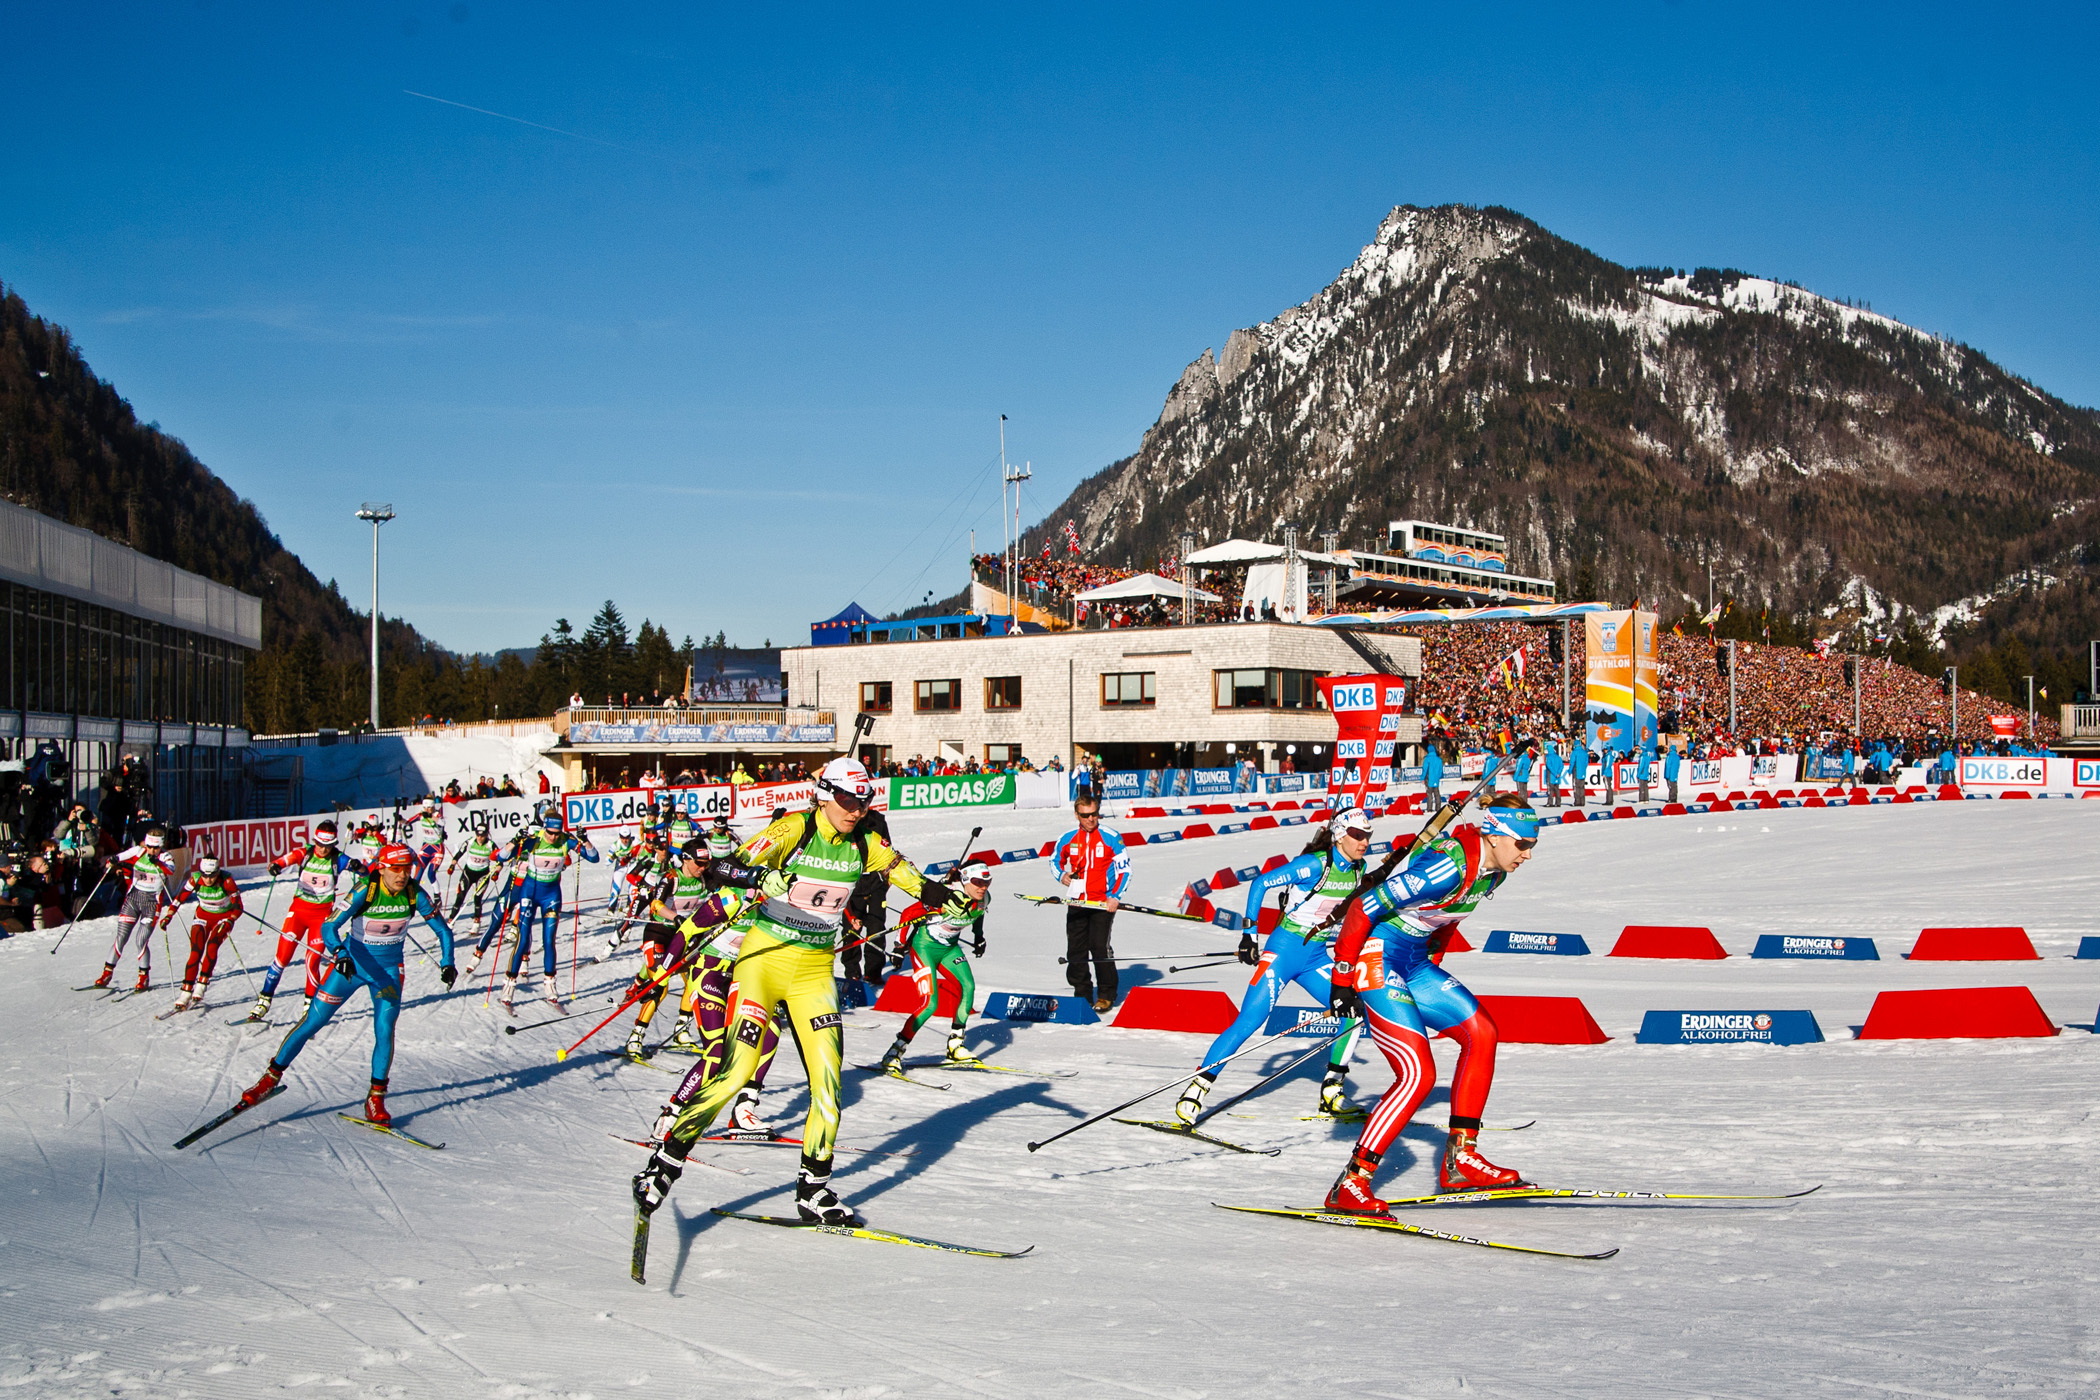 12 Biathlon in der Chiemgau Arena